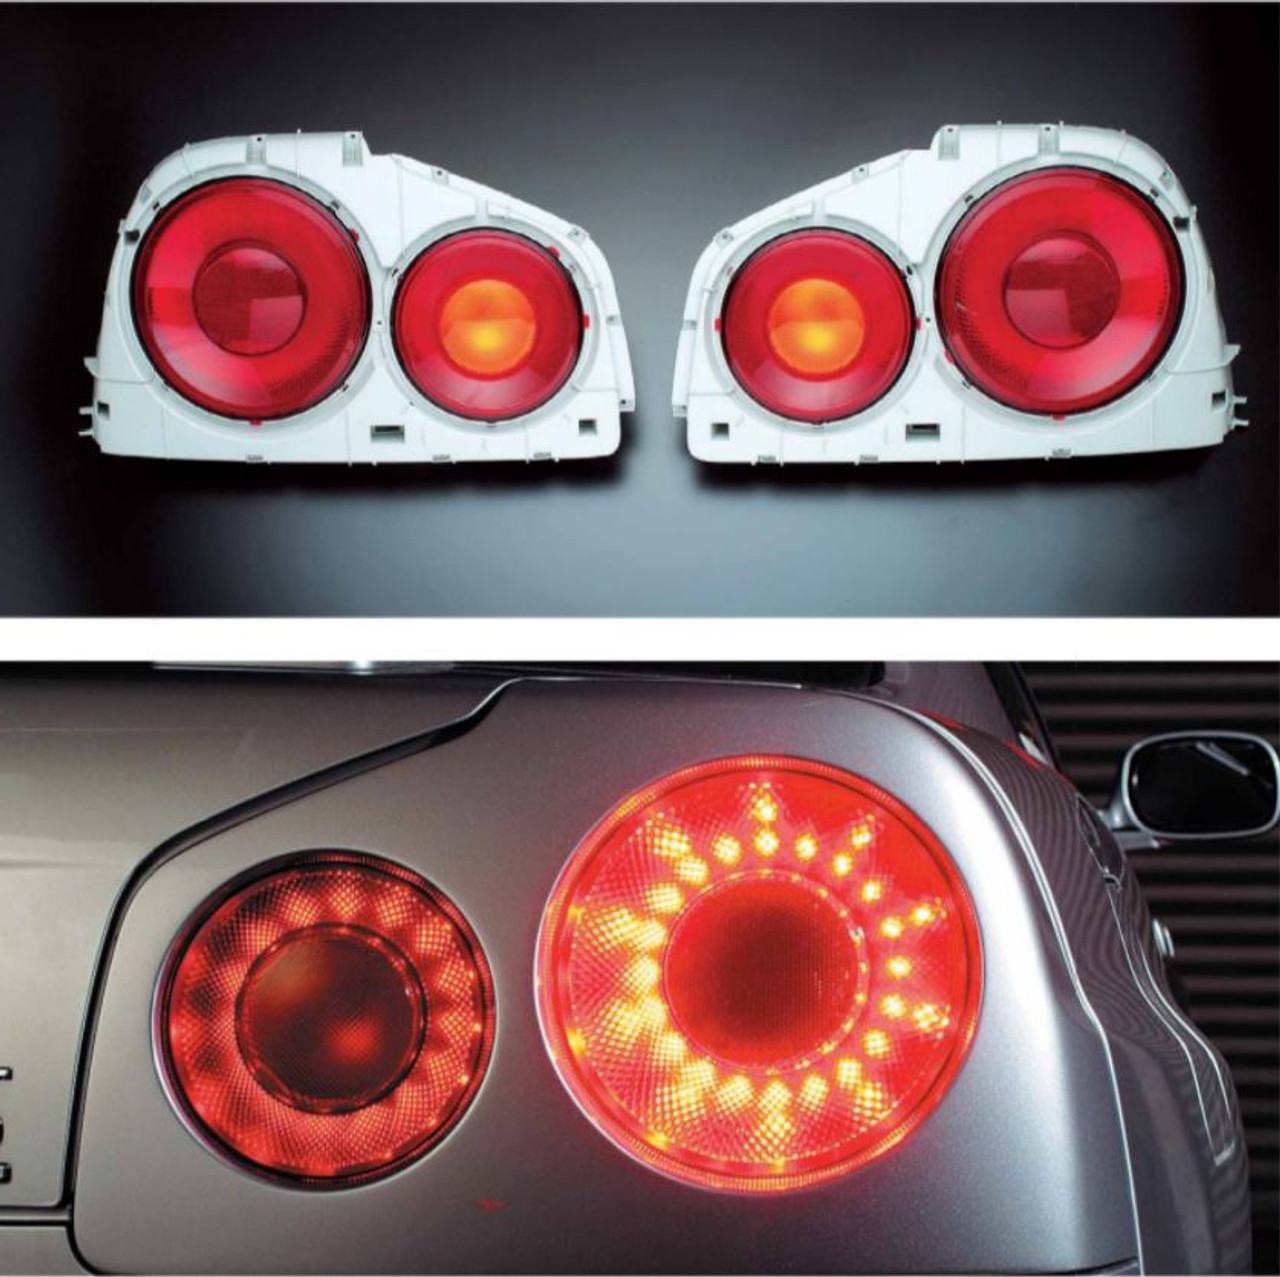 Tail BNR34 Nissan Lamp RNR45 Set Skyline Nismo GT 26550 LED R GT kXOuPZi